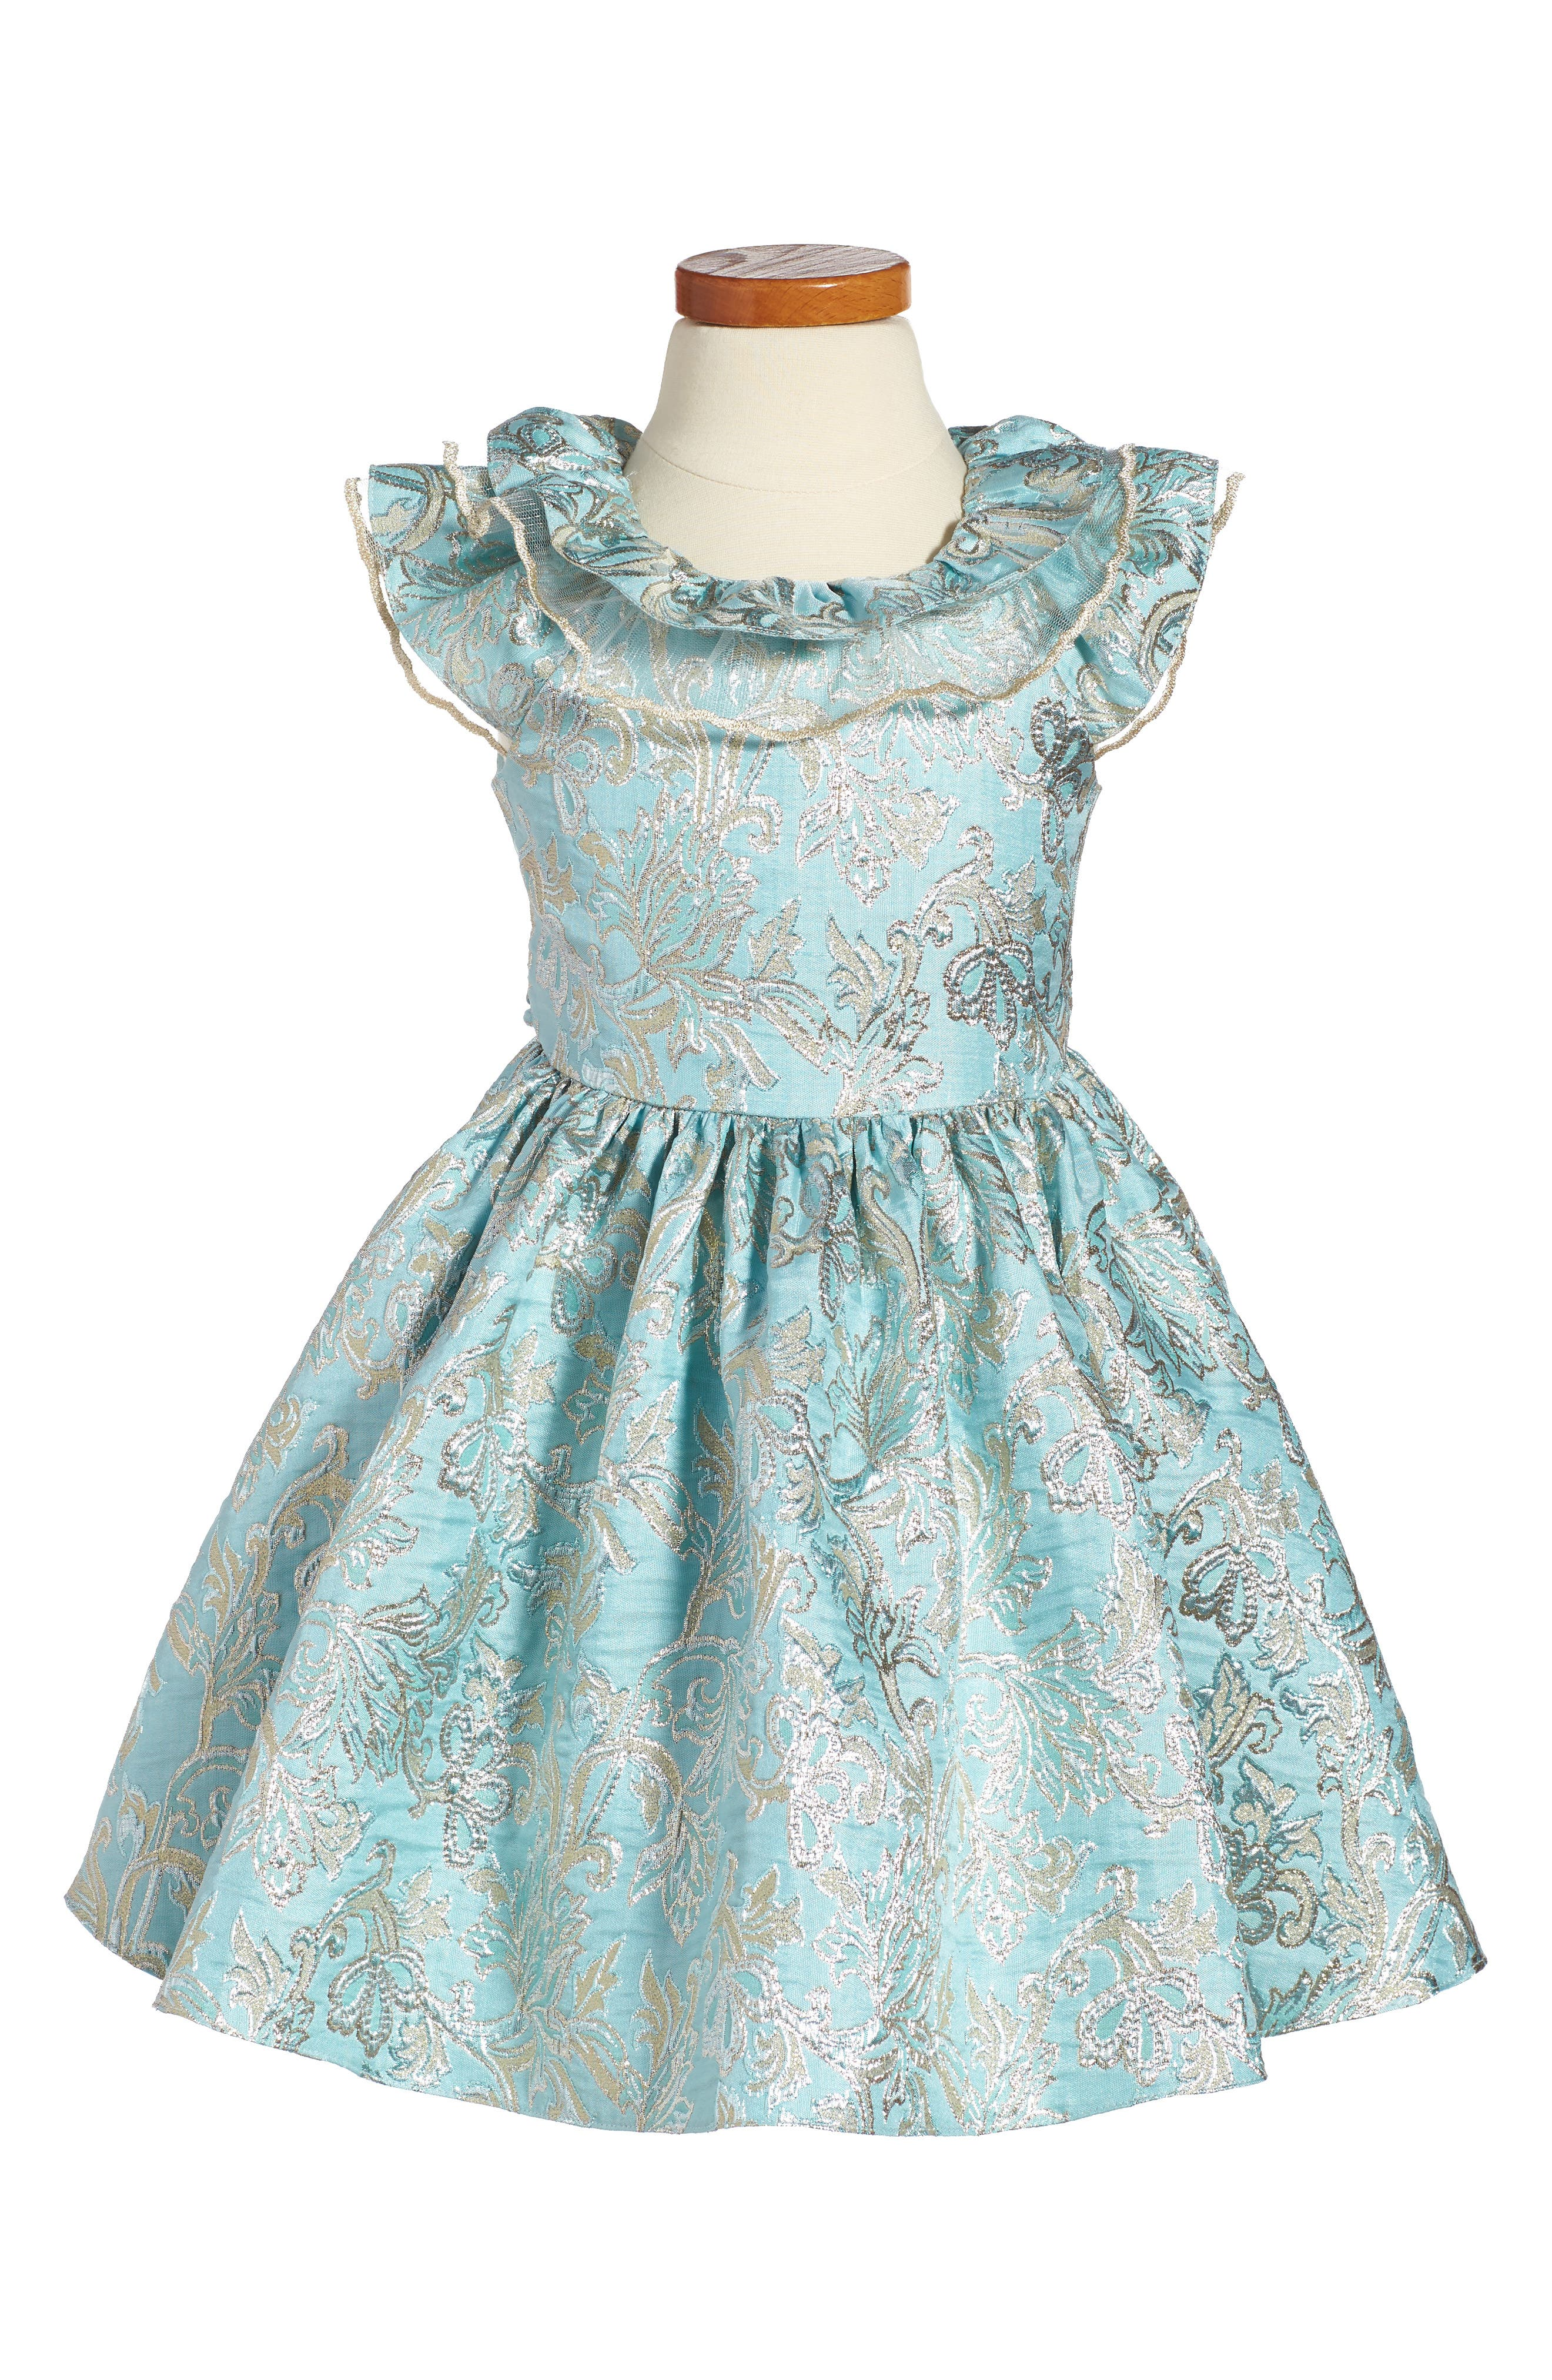 David Chales Ruffle Neck Brocade Dress,                         Main,                         color, Turquoise